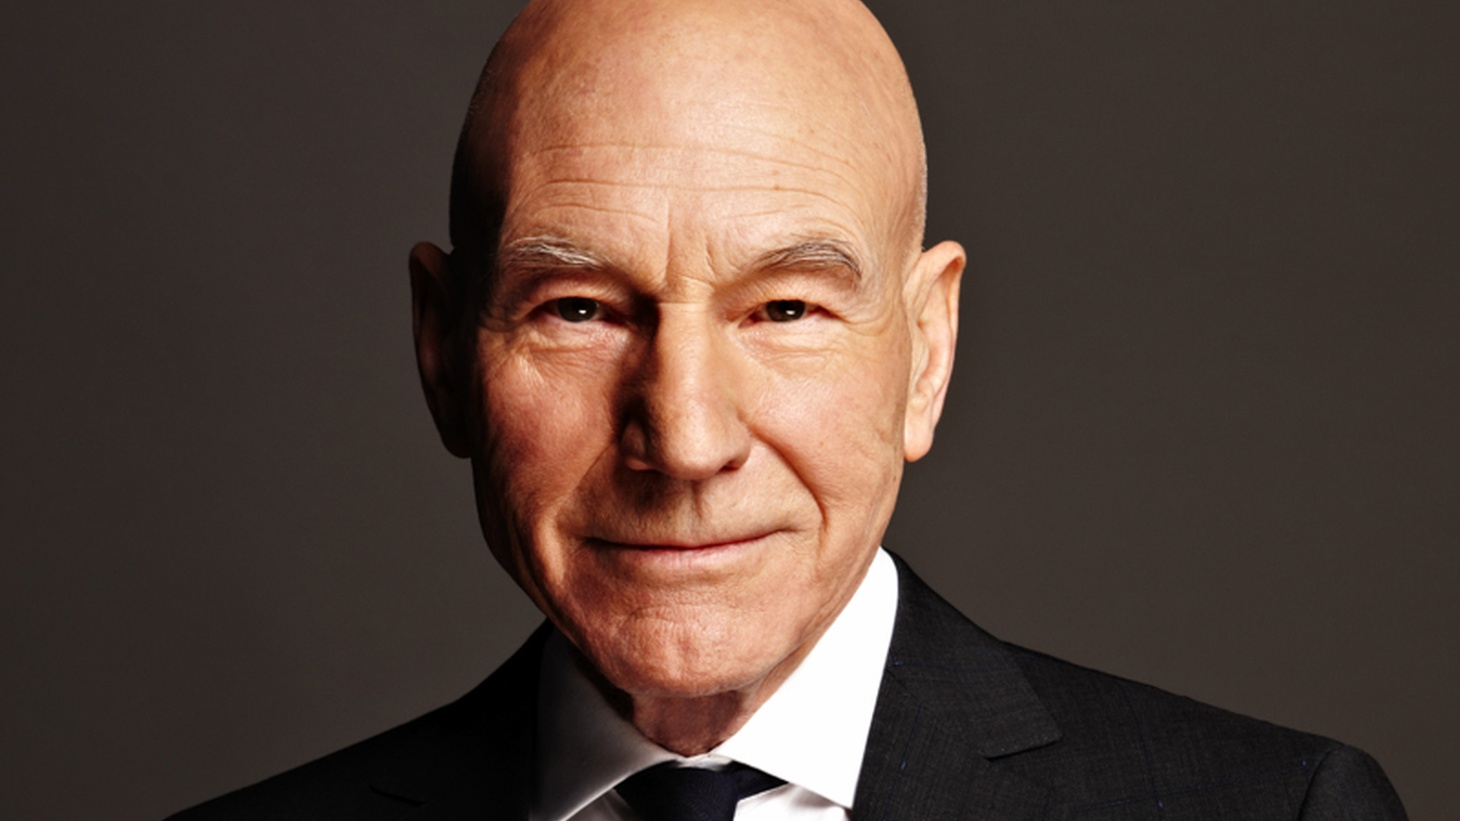 From Shakespeare to Star Trek and the hugely successful X-Men series, Patrick Stewart is a beloved and accomplished actor and he gravitates to music that is emotional yet humorous.